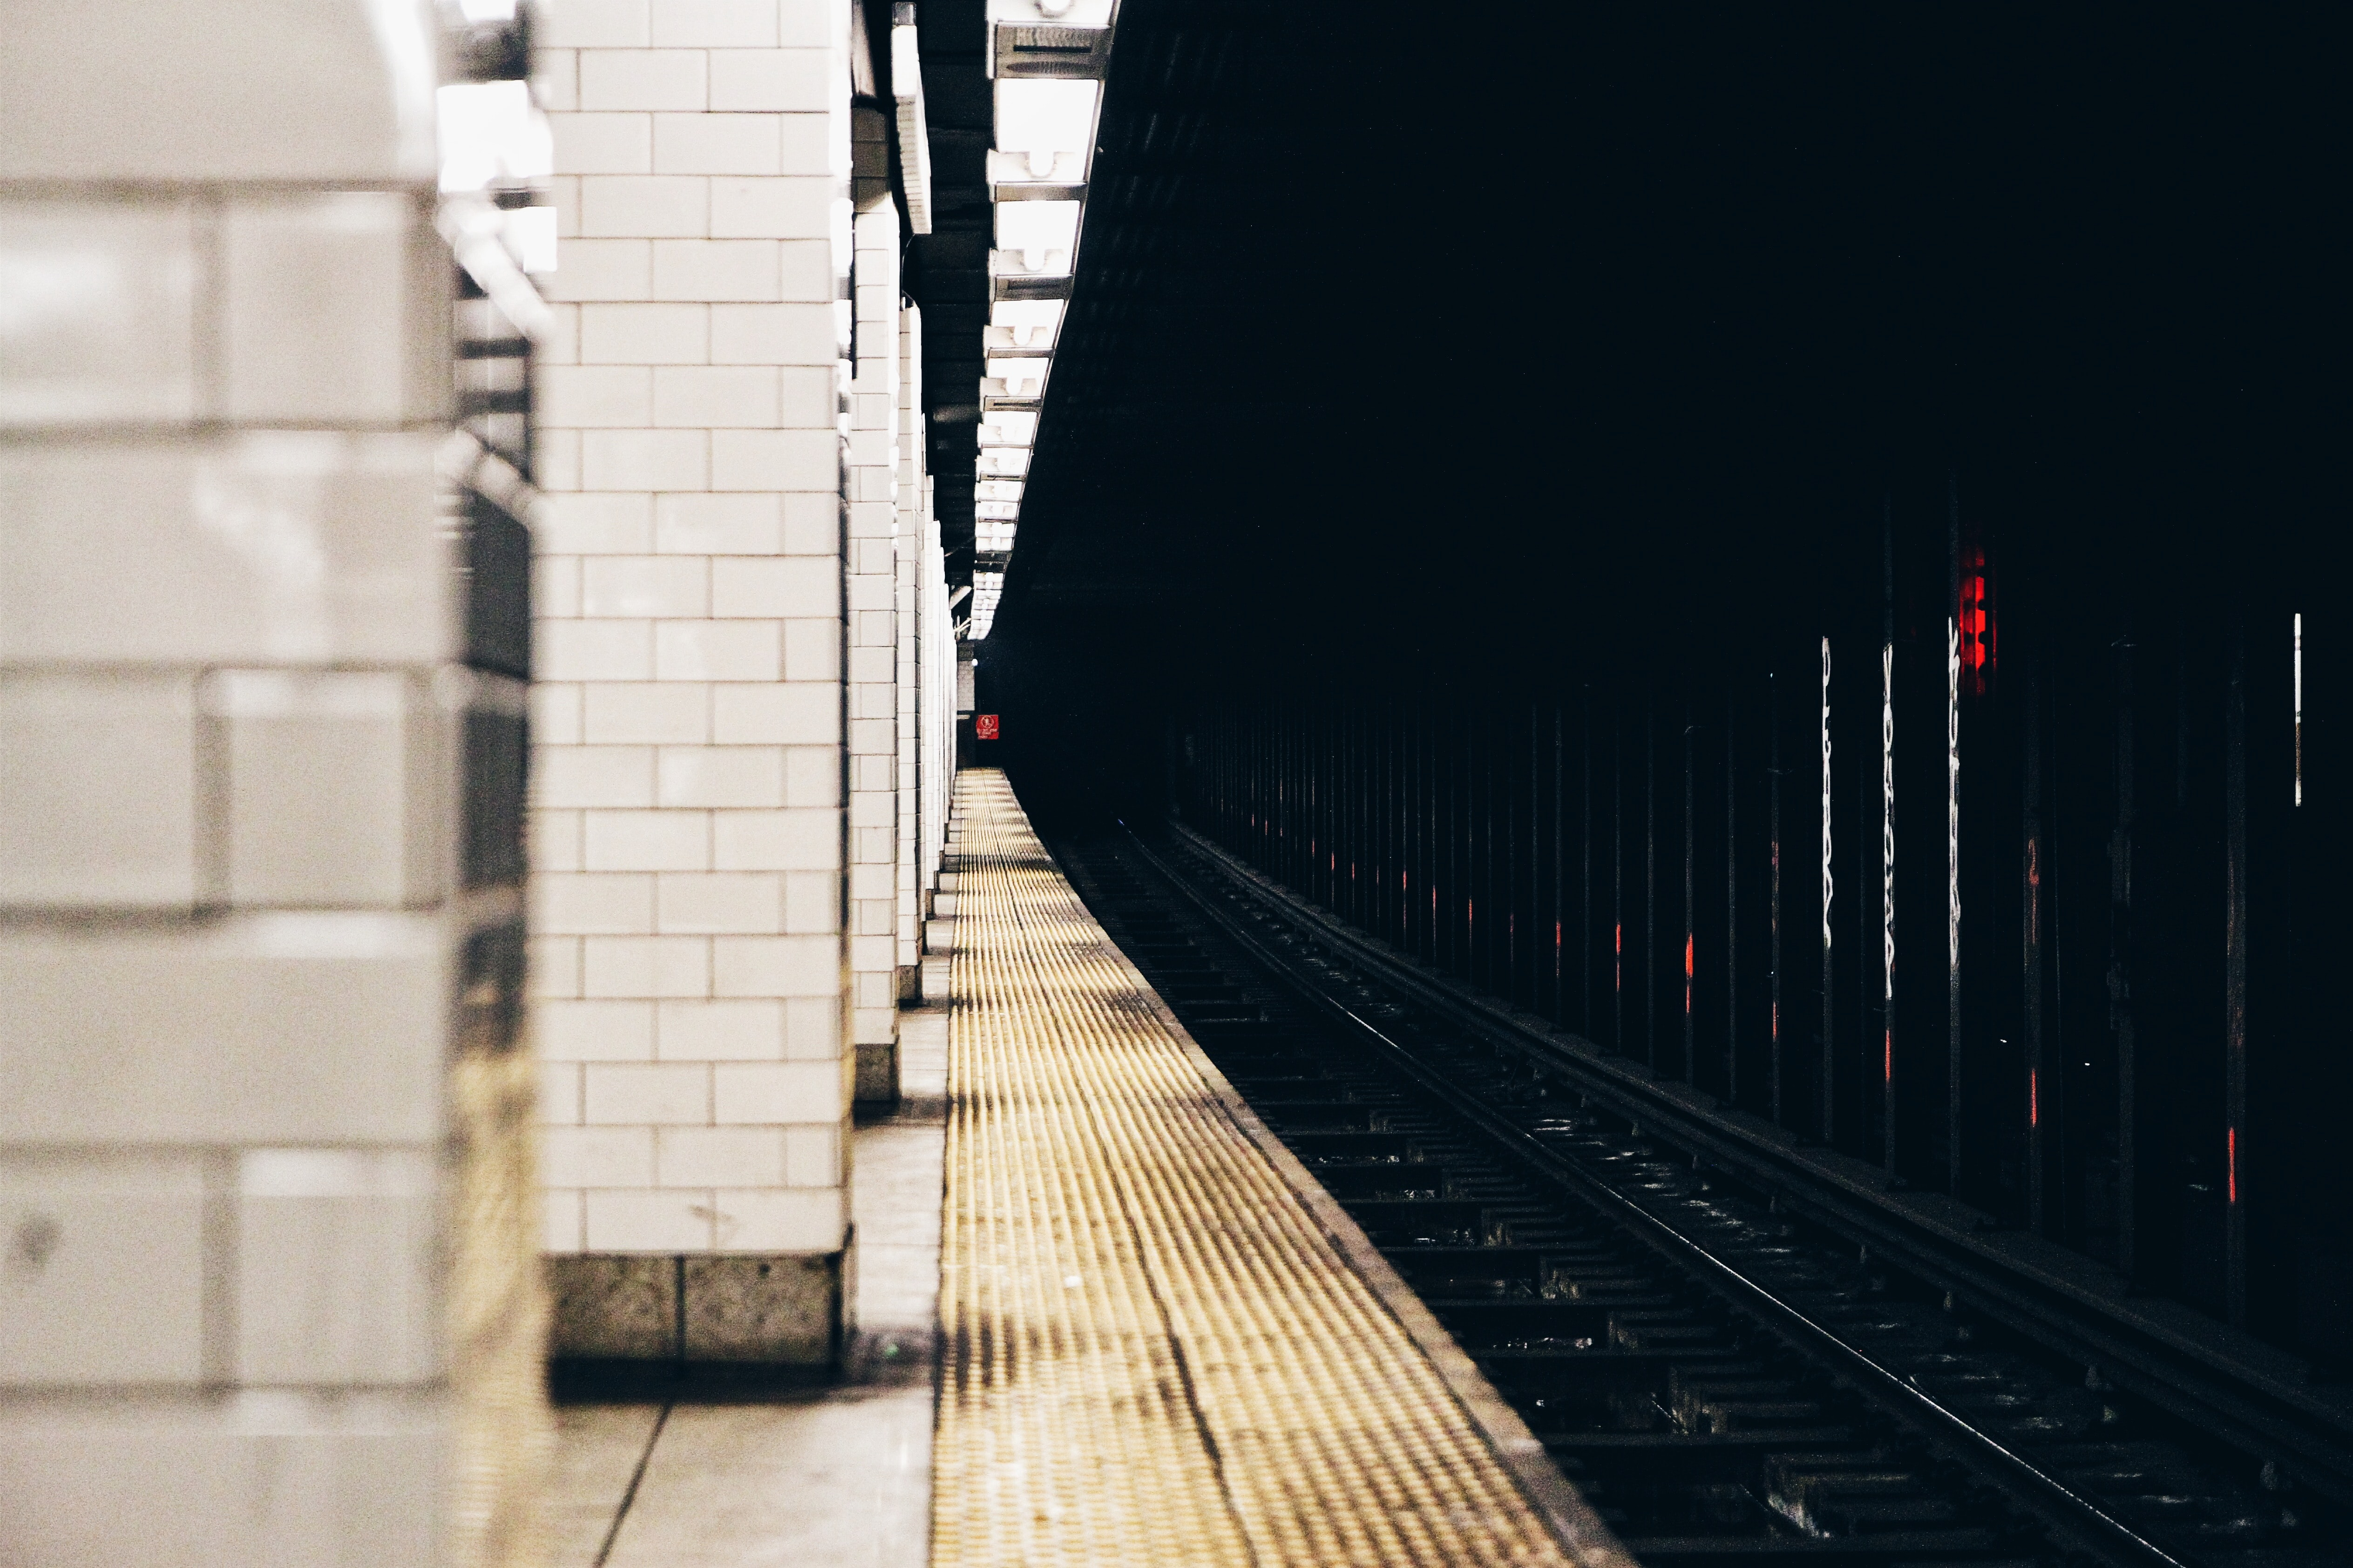 The view from the edge of the platform reveals a long stretch of subway track.